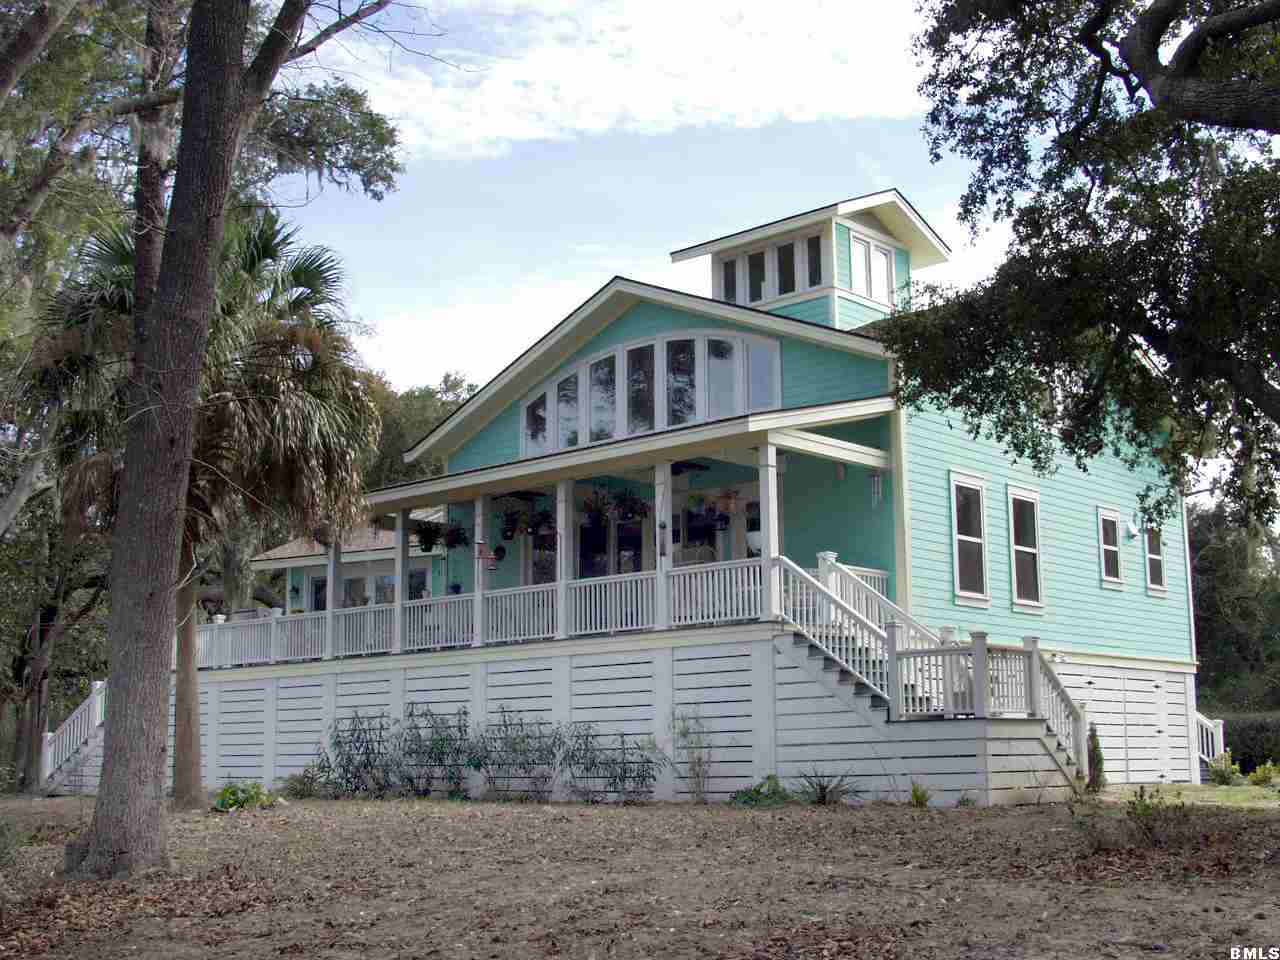 4.49 acres in Beaufort, South Carolina